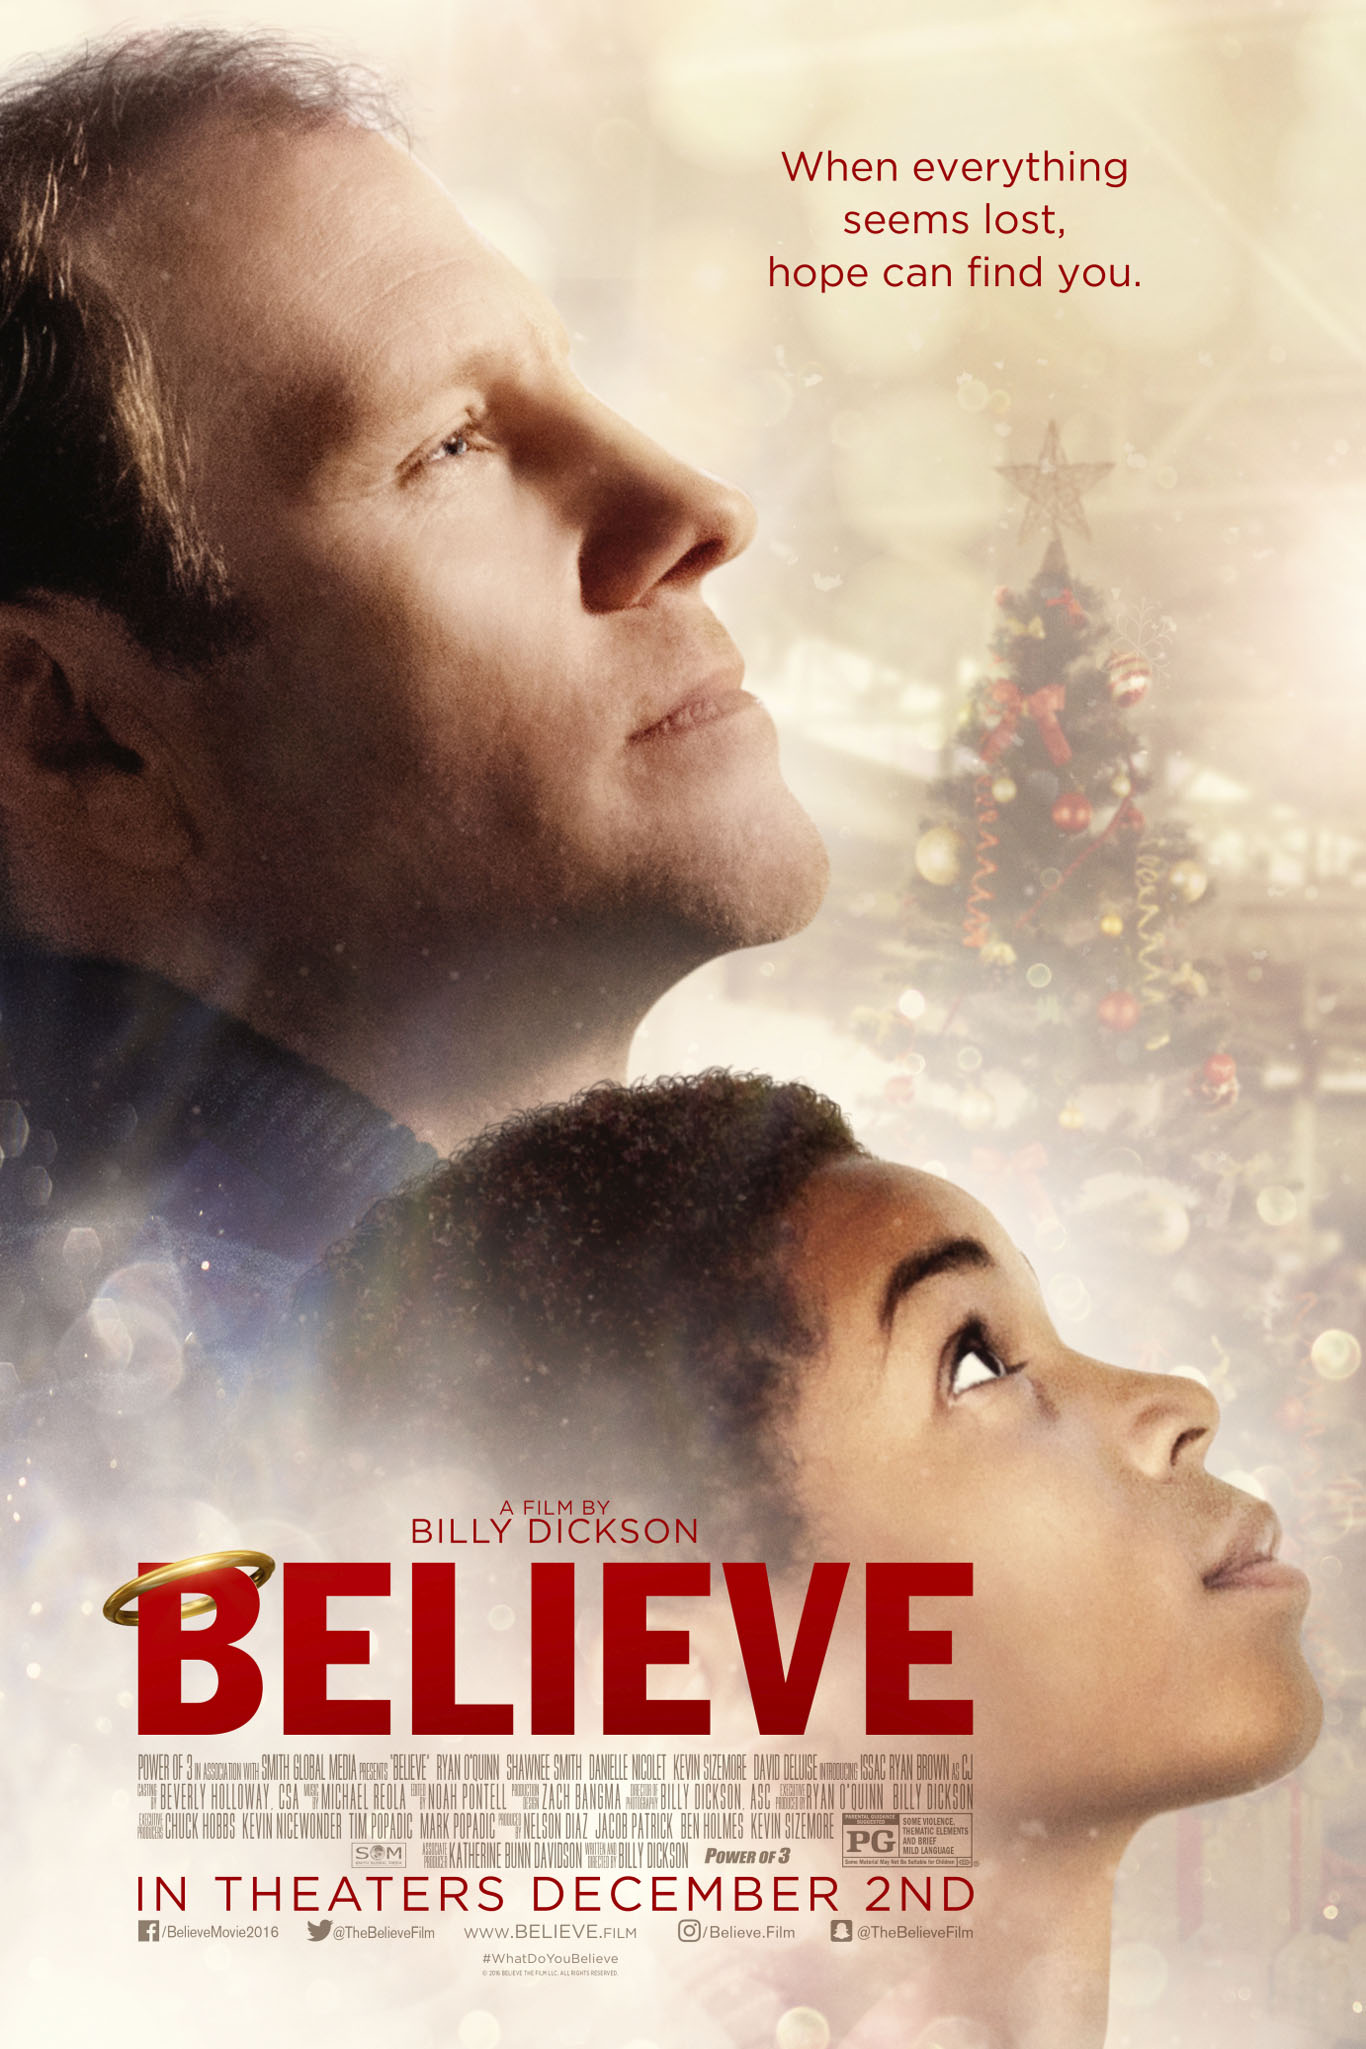 Believe at an AMC Theatre near you